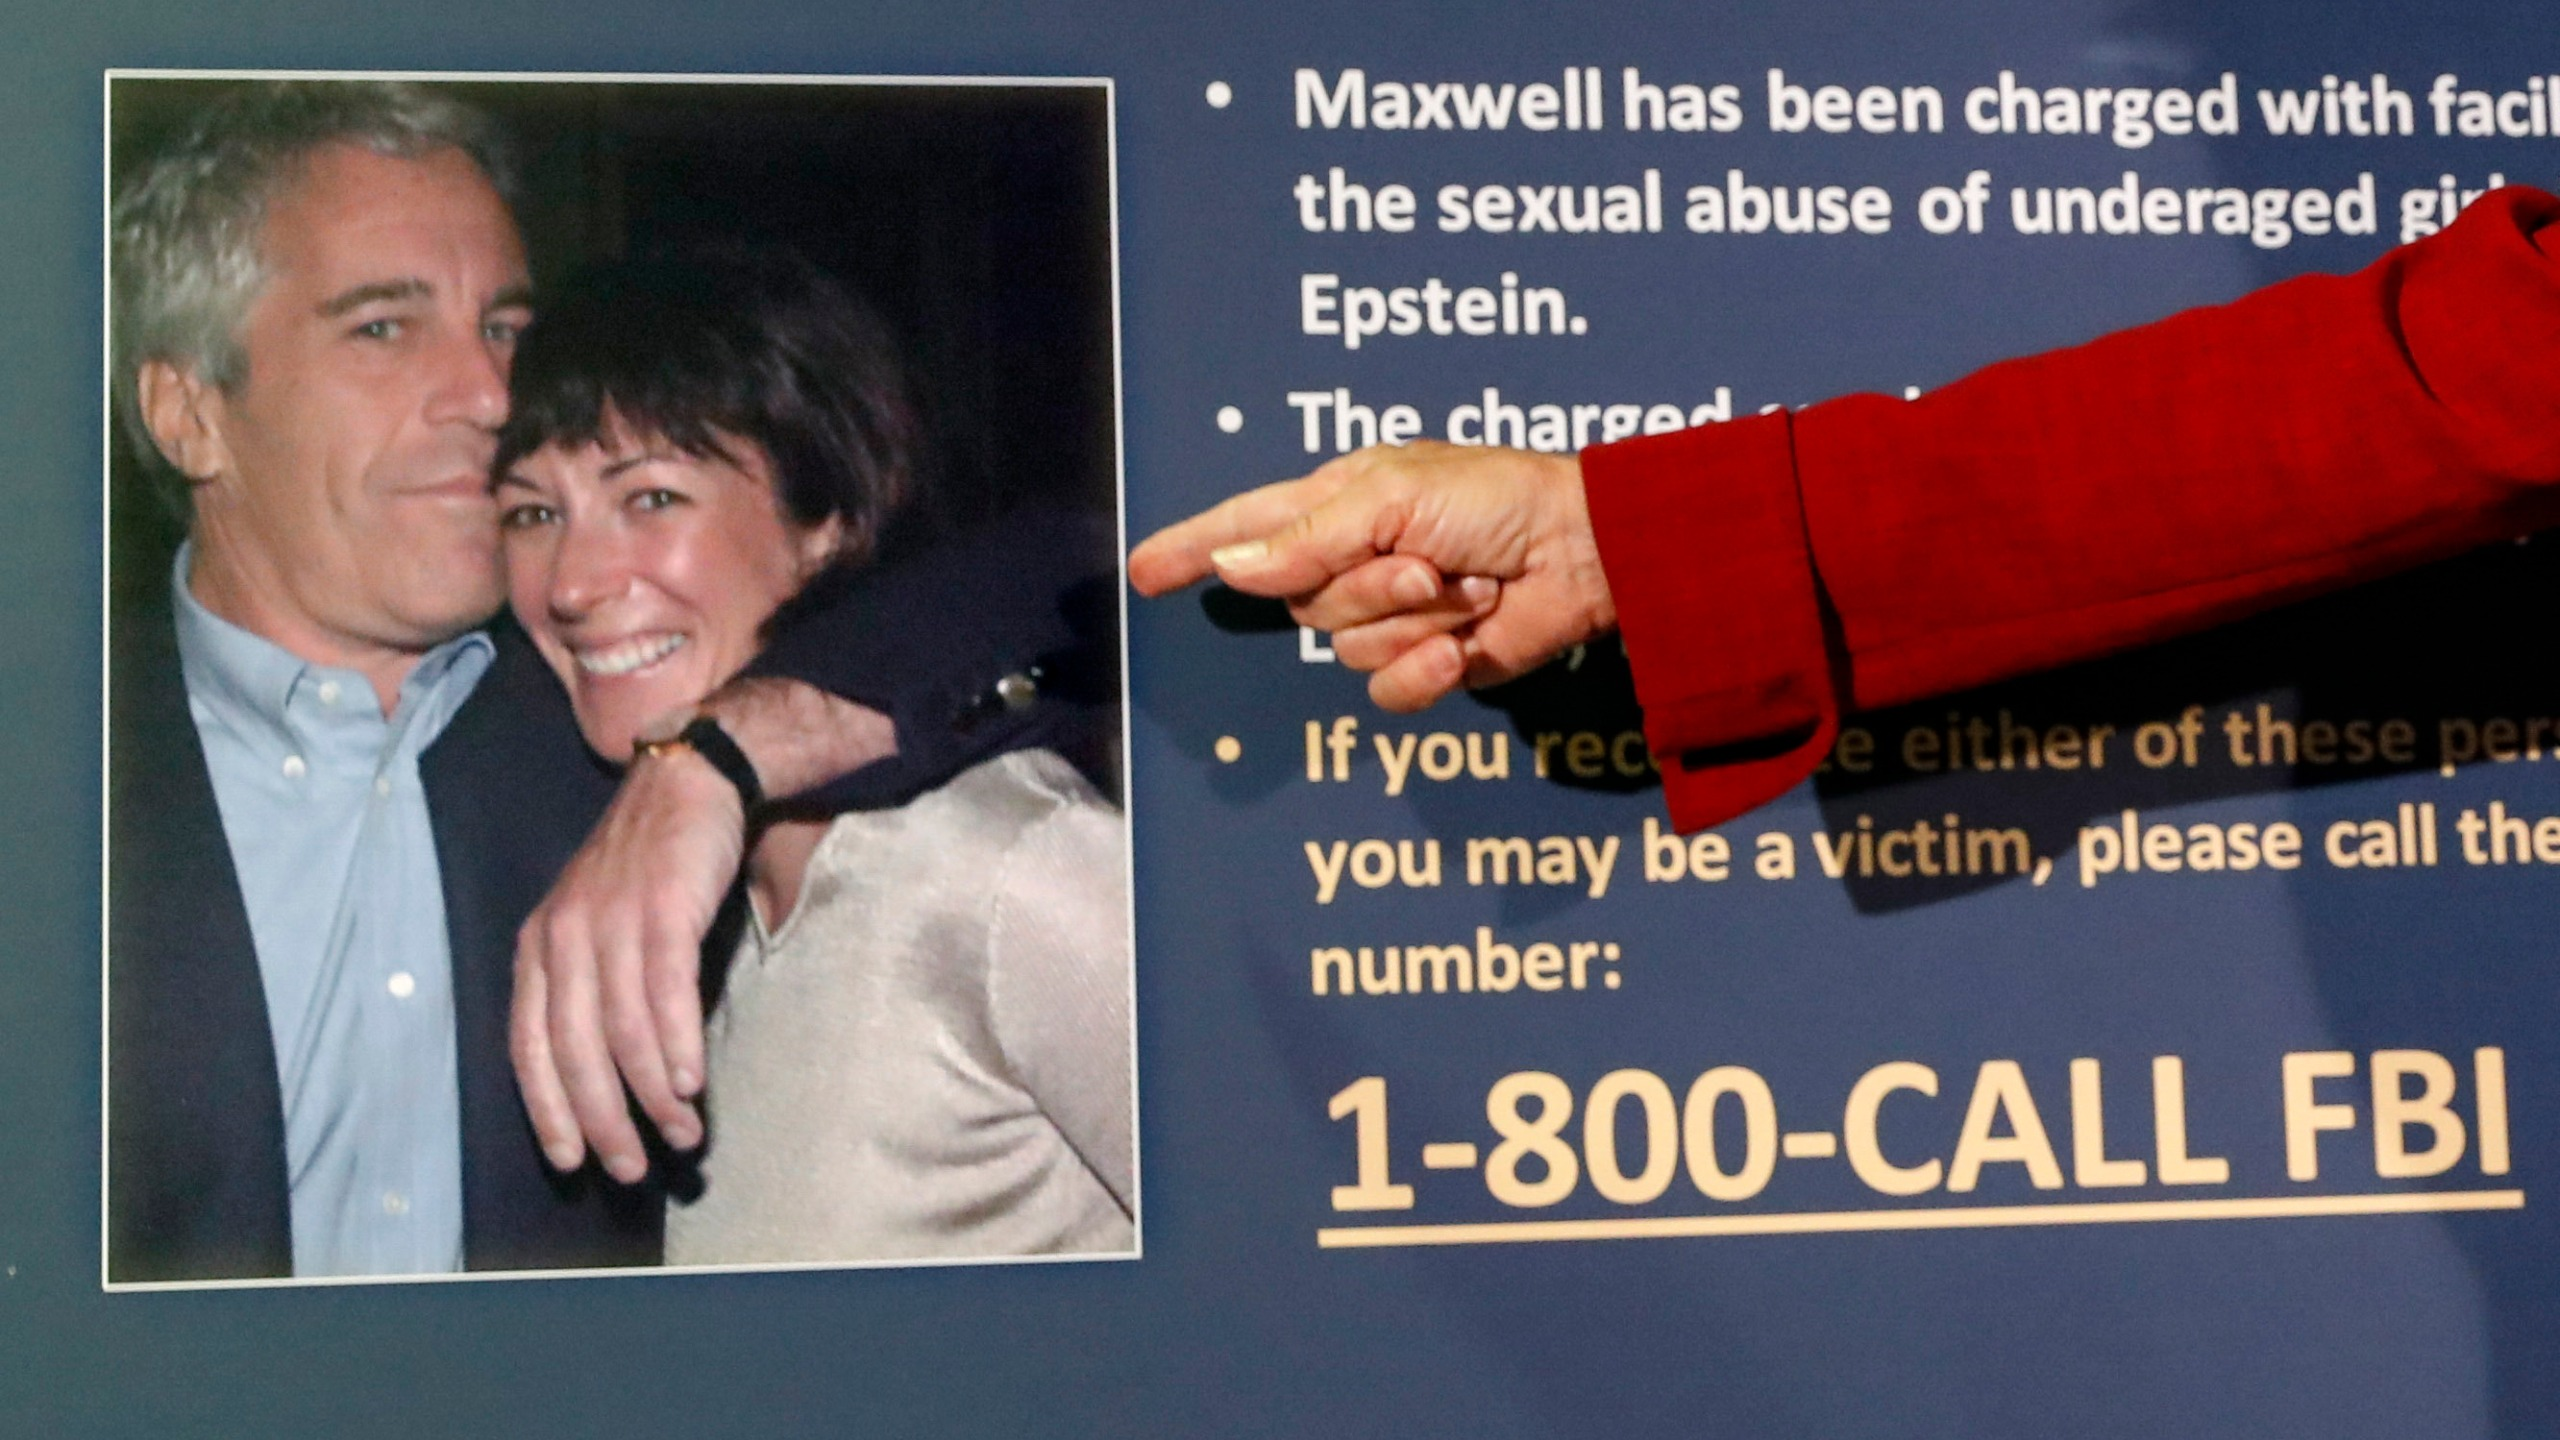 "In this July 2, 2020, file photo, Audrey Strauss, acting United States Attorney for the Southern District of New York, points to a photo of Jeffrey Epstein and Ghislaine Maxwell during a news conference, in New York. Transcripts released Thursday show the ex-girlfriend of financier Jeffrey Epstein was combative and defensive under tough questioning four years ago about her ex-boyfriend's interactions with underage girls. Ghislaine Maxwell said she ""never saw any inappropriate underage activities with Jeffrey ever."" (AP Photo/John Minchillo, File)"